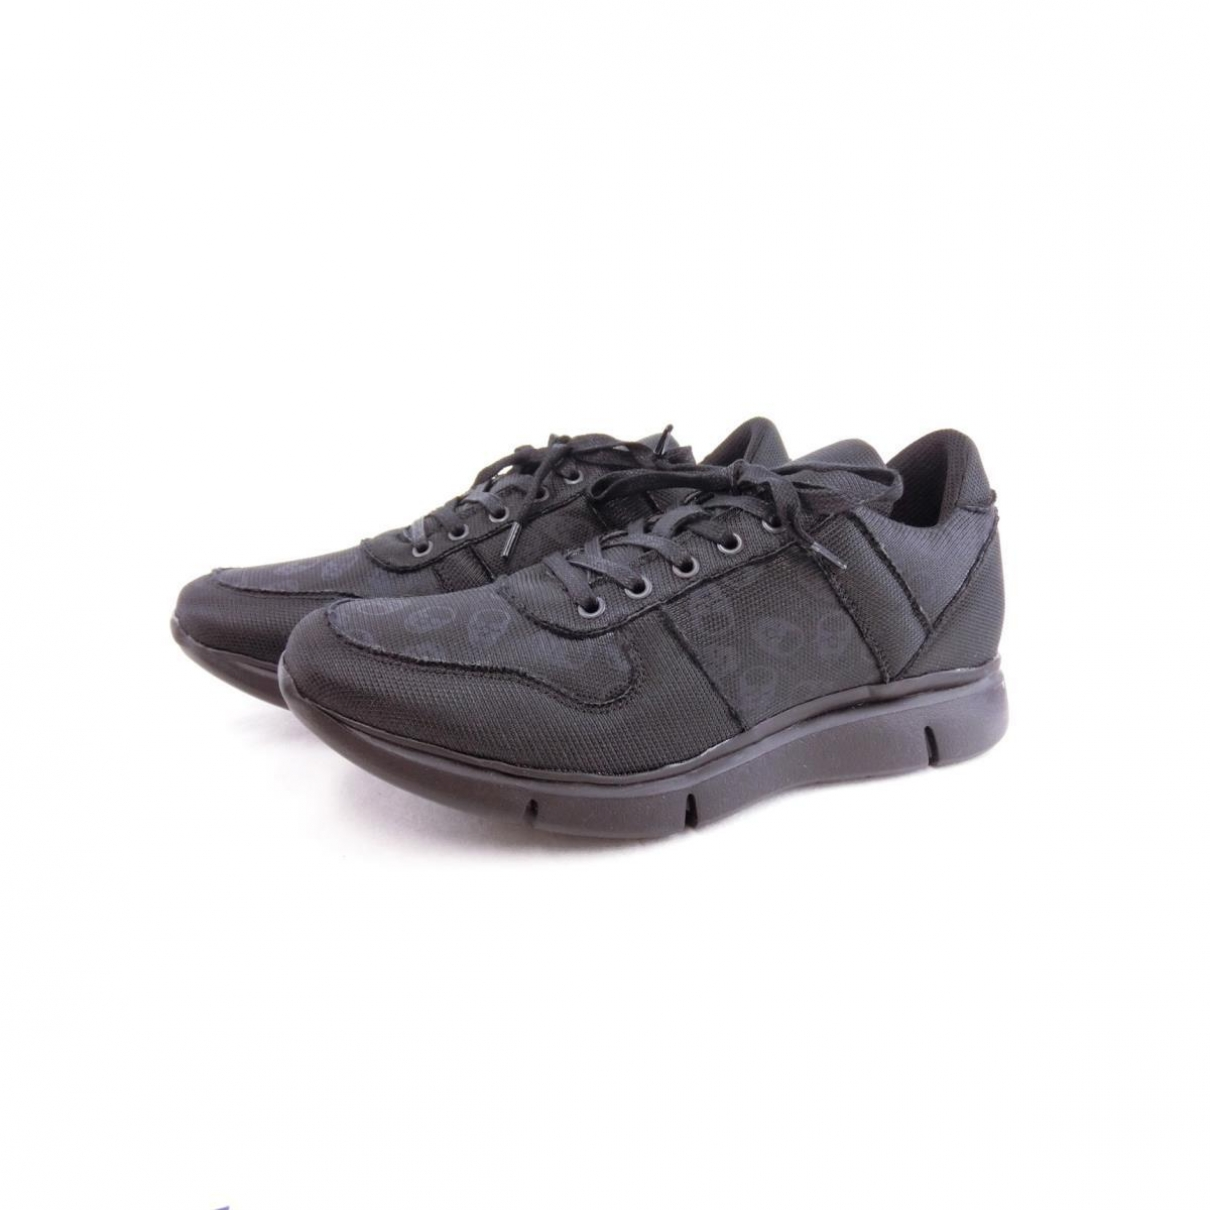 Lucien Pellat Finet \N Black Leather Trainers for Men 41 EU